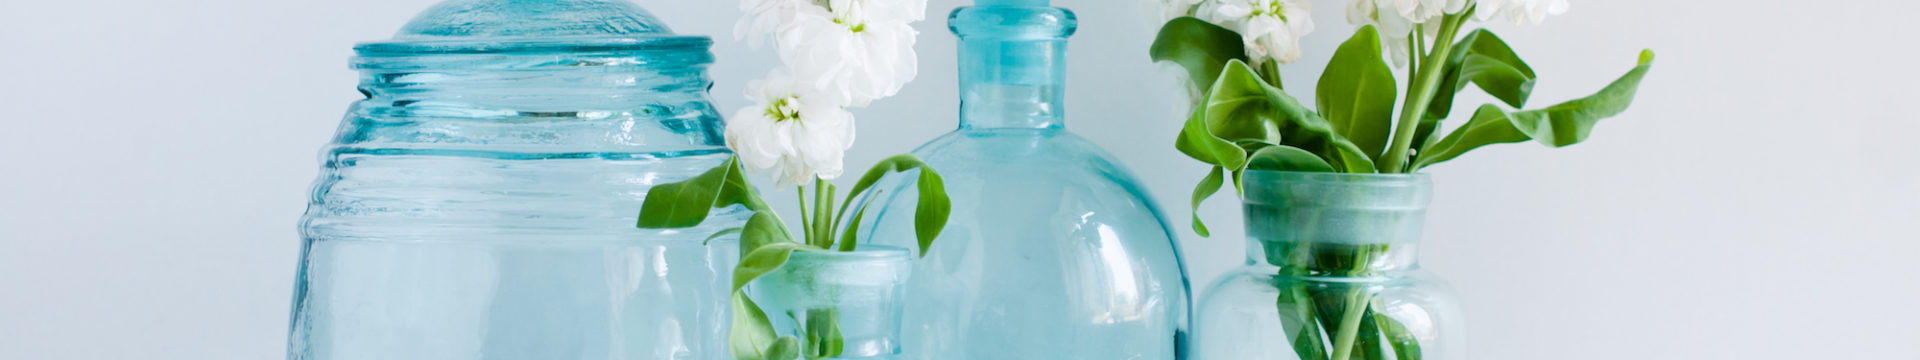 vintage vases with white florals on a rustic shelf